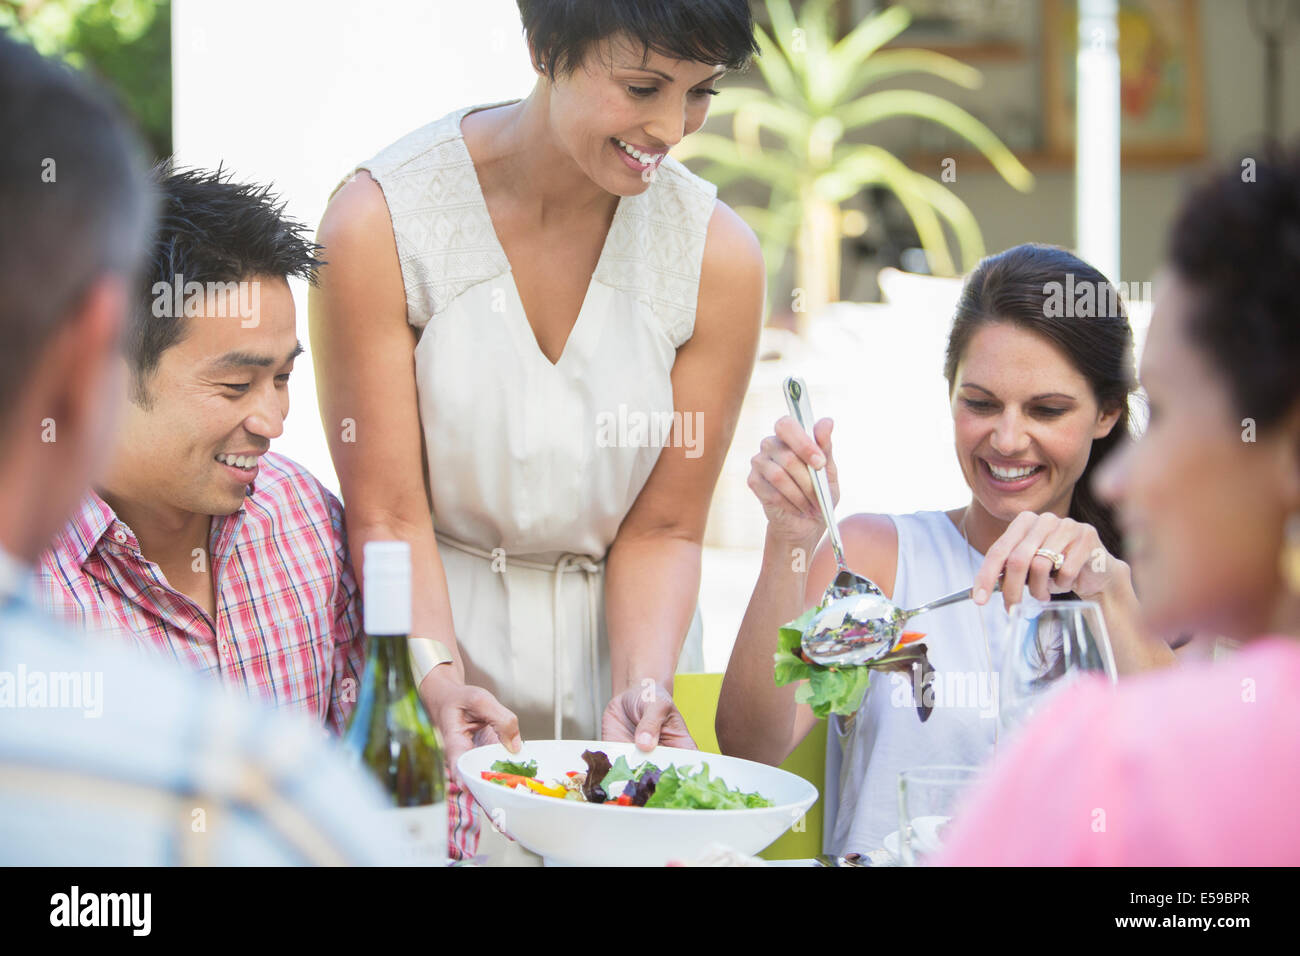 Woman serving friends at table outdoors - Stock Image